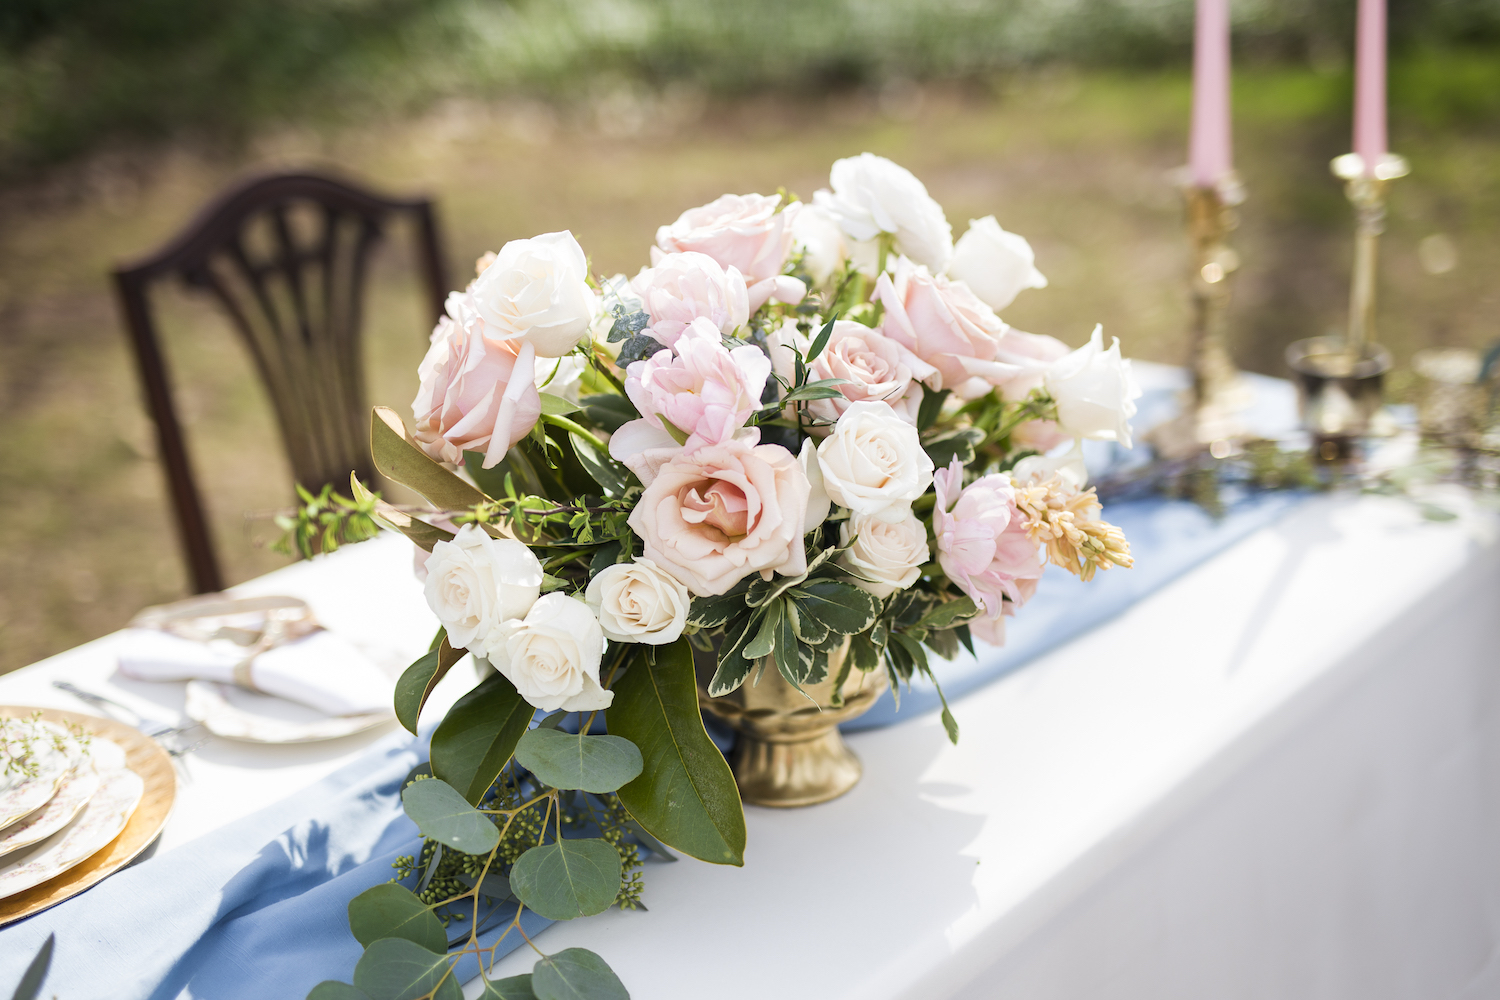 Pretty Pink and White Rose Wedding Centerpiece in a Gold Compote / photo by Kevyn Dixon Photo